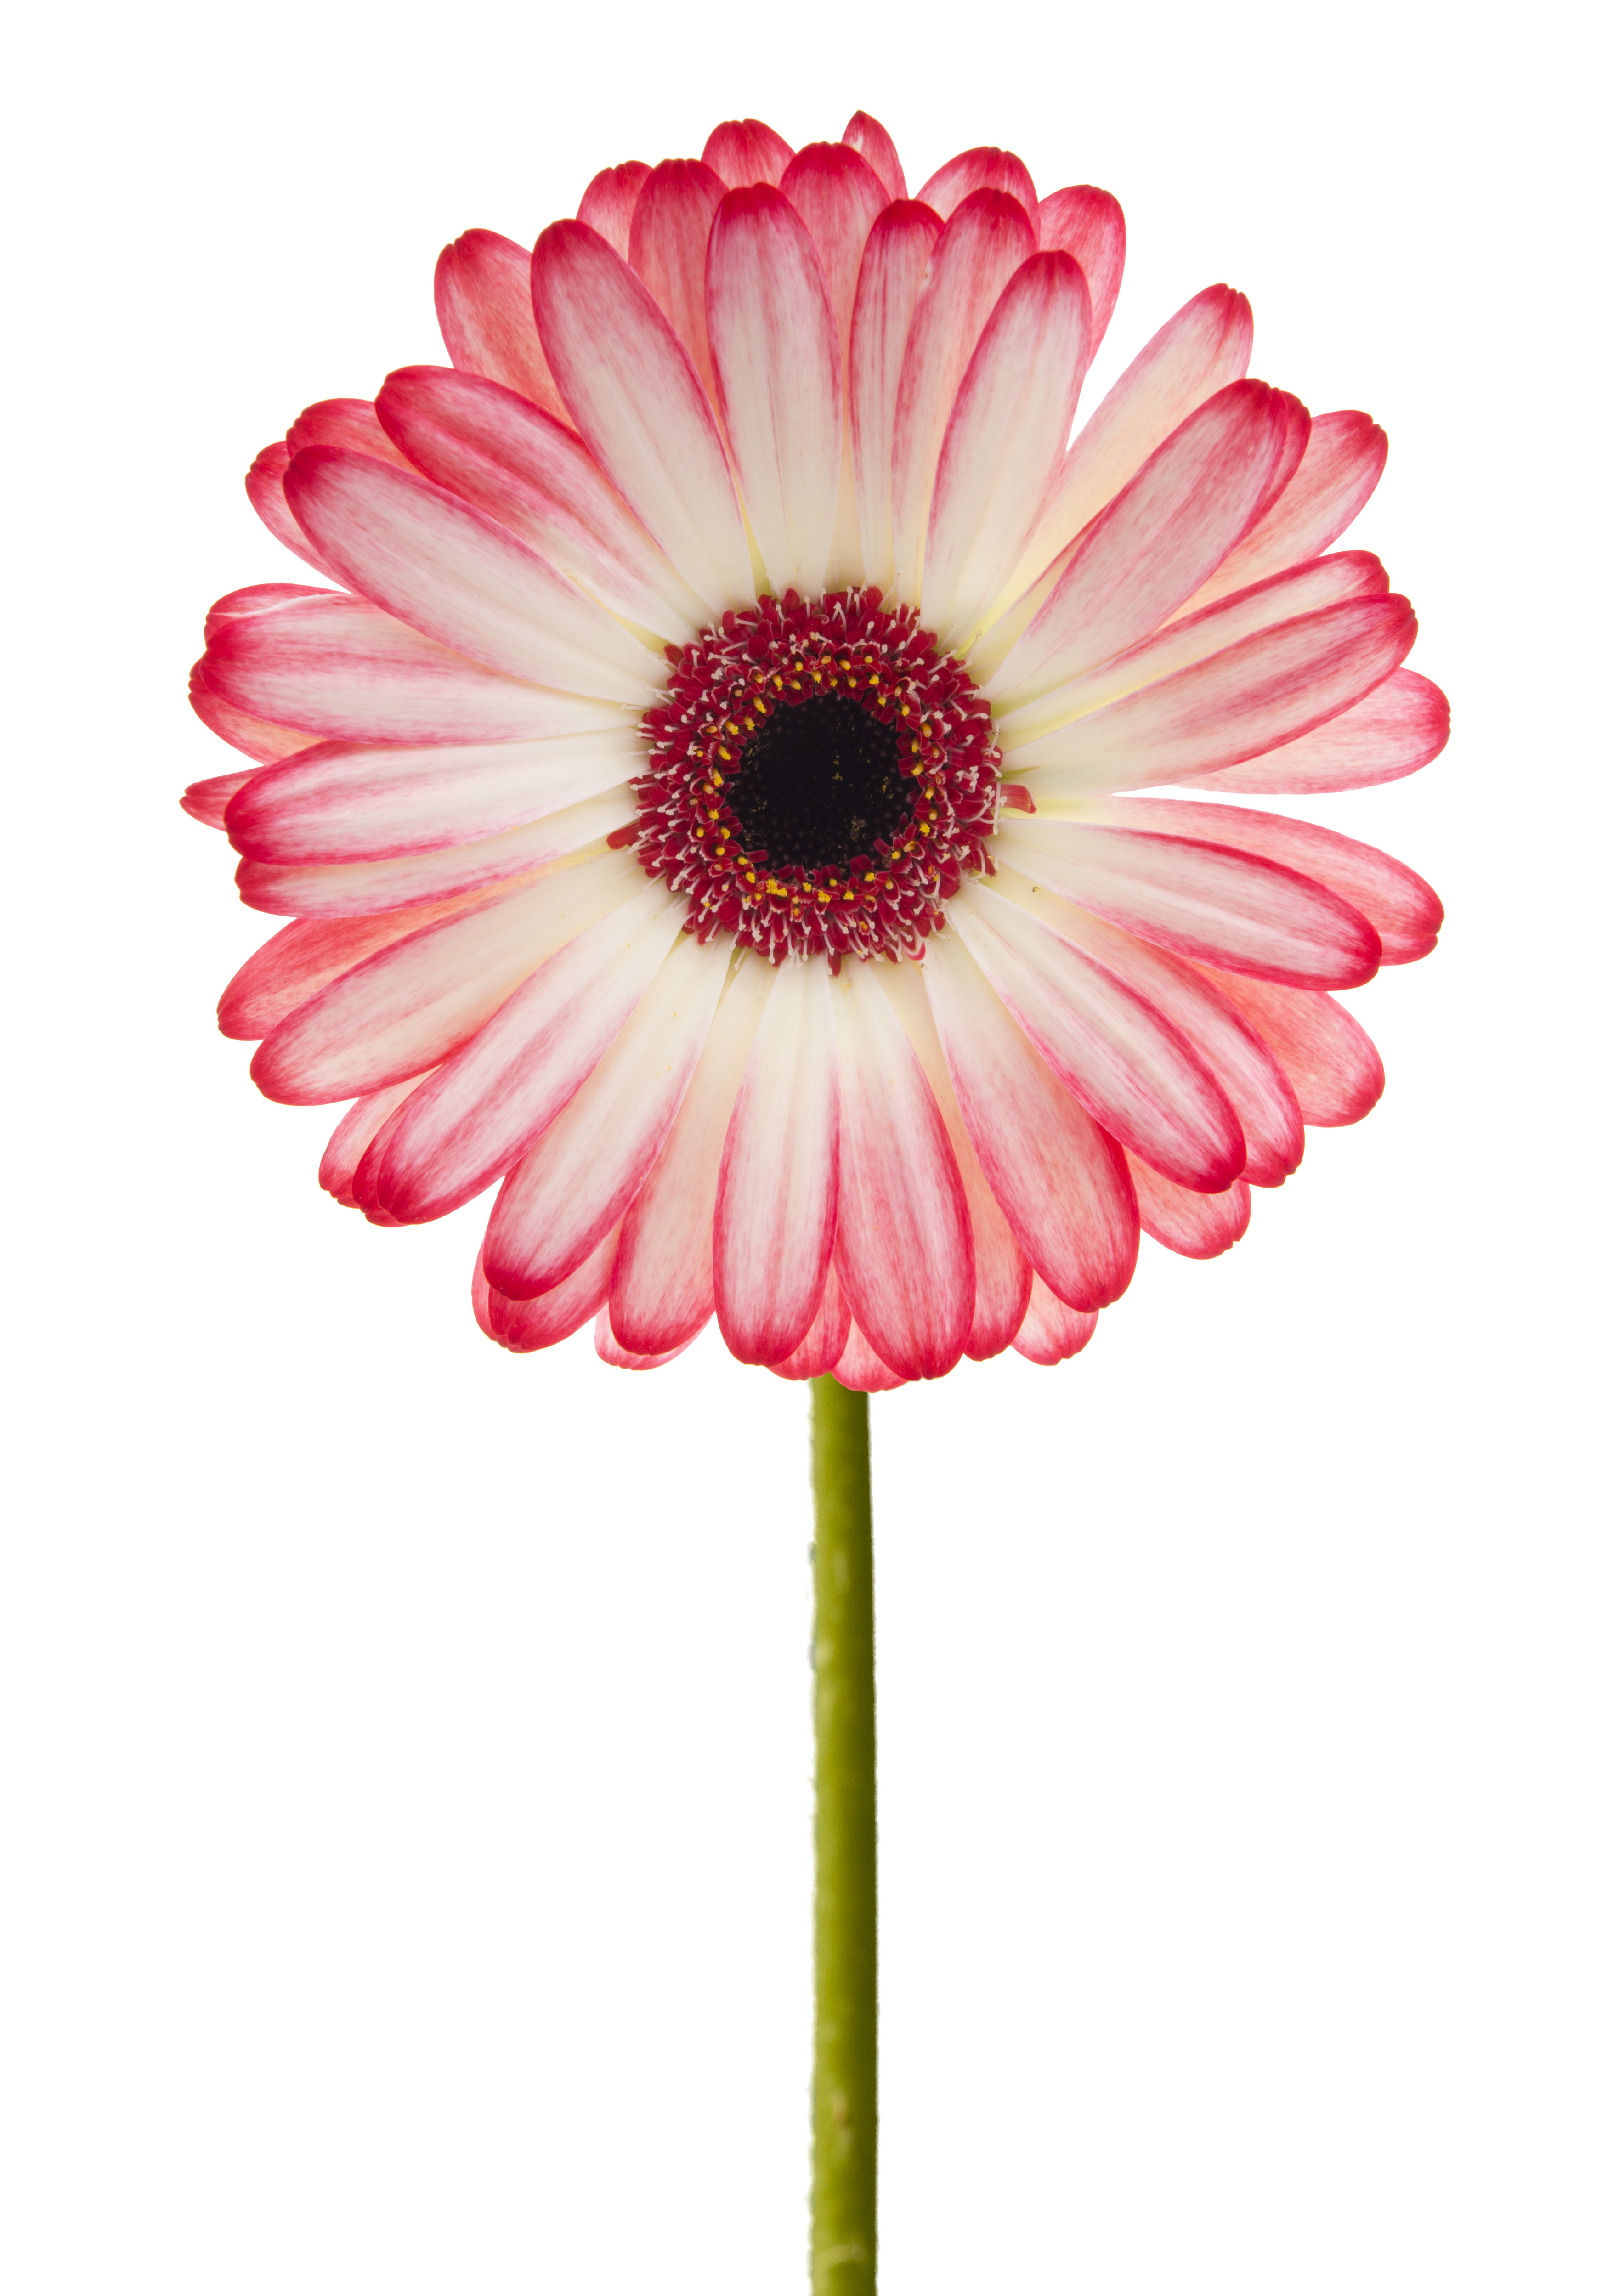 file pink gerbera 5888414978 jpg wikimedia commons. Black Bedroom Furniture Sets. Home Design Ideas